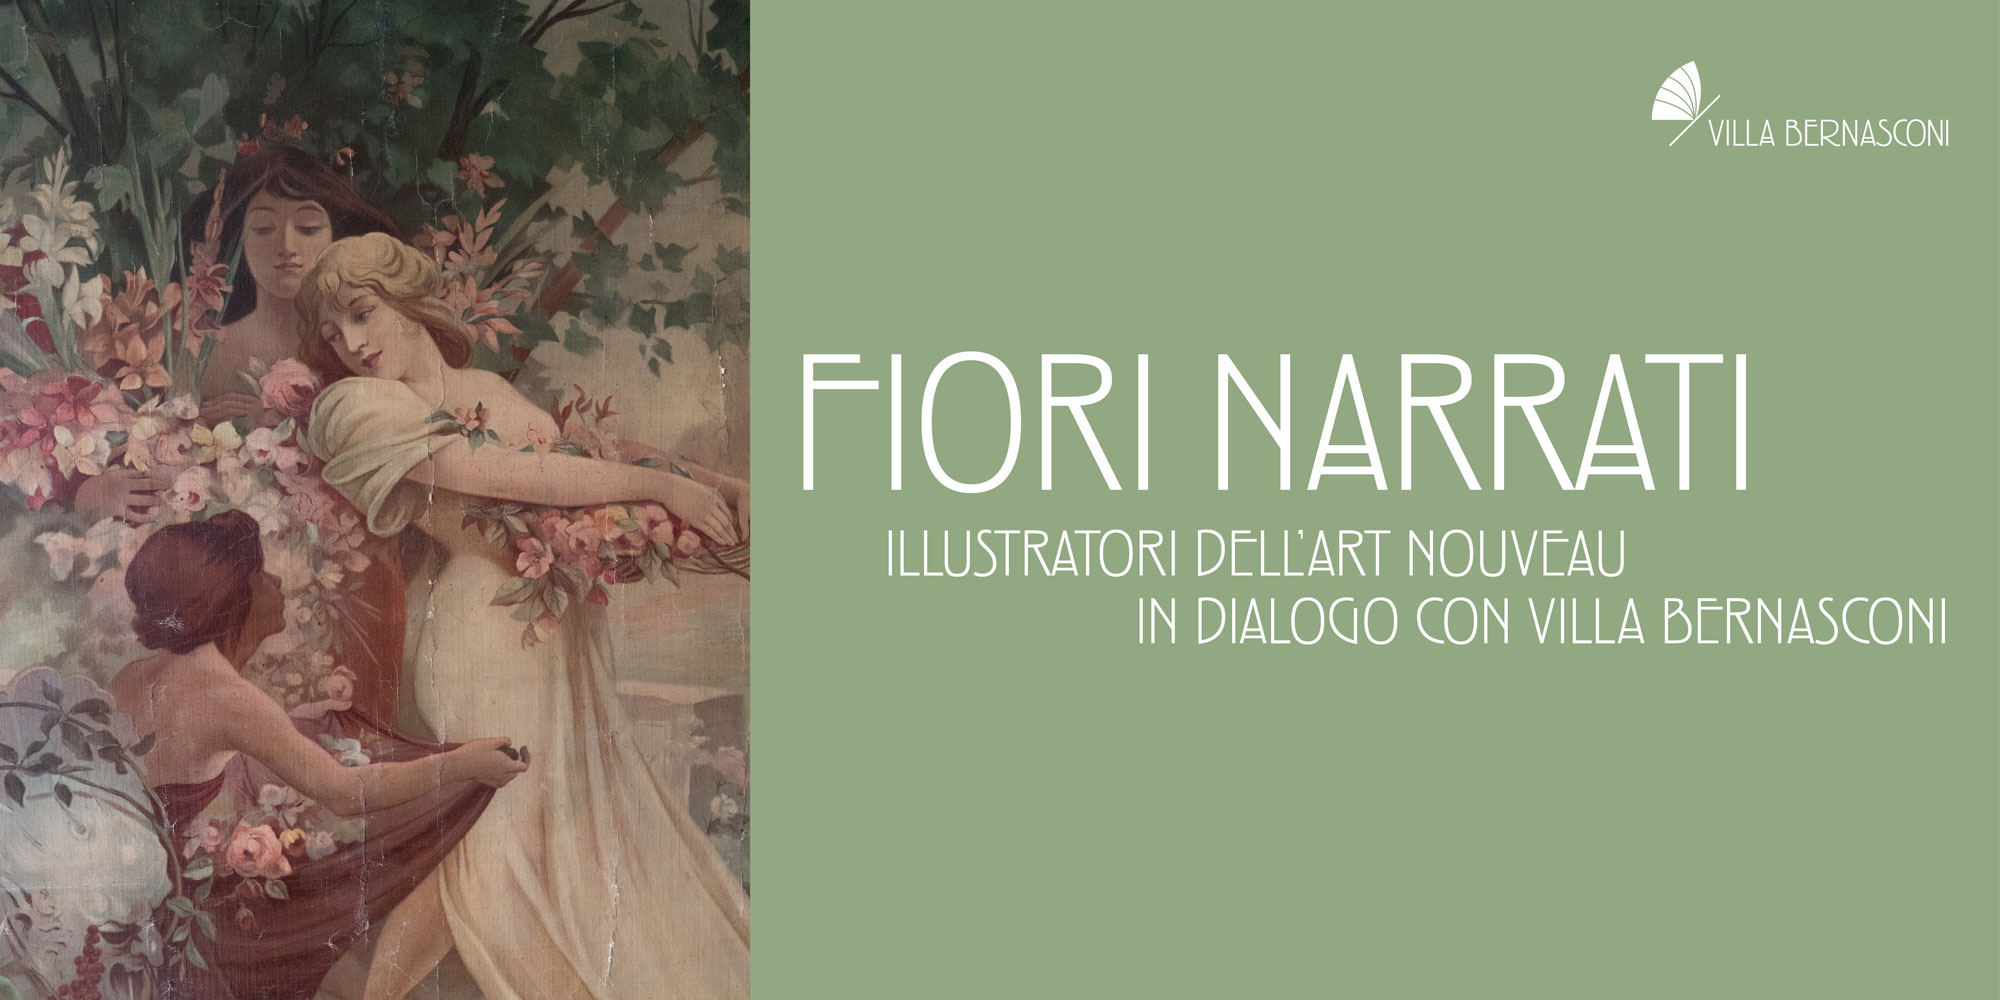 FIORI NARRATI. ILLUSTRATORI DELL'ART NOUVEAU IN DIALOGO CON VILLA BERNASCONI